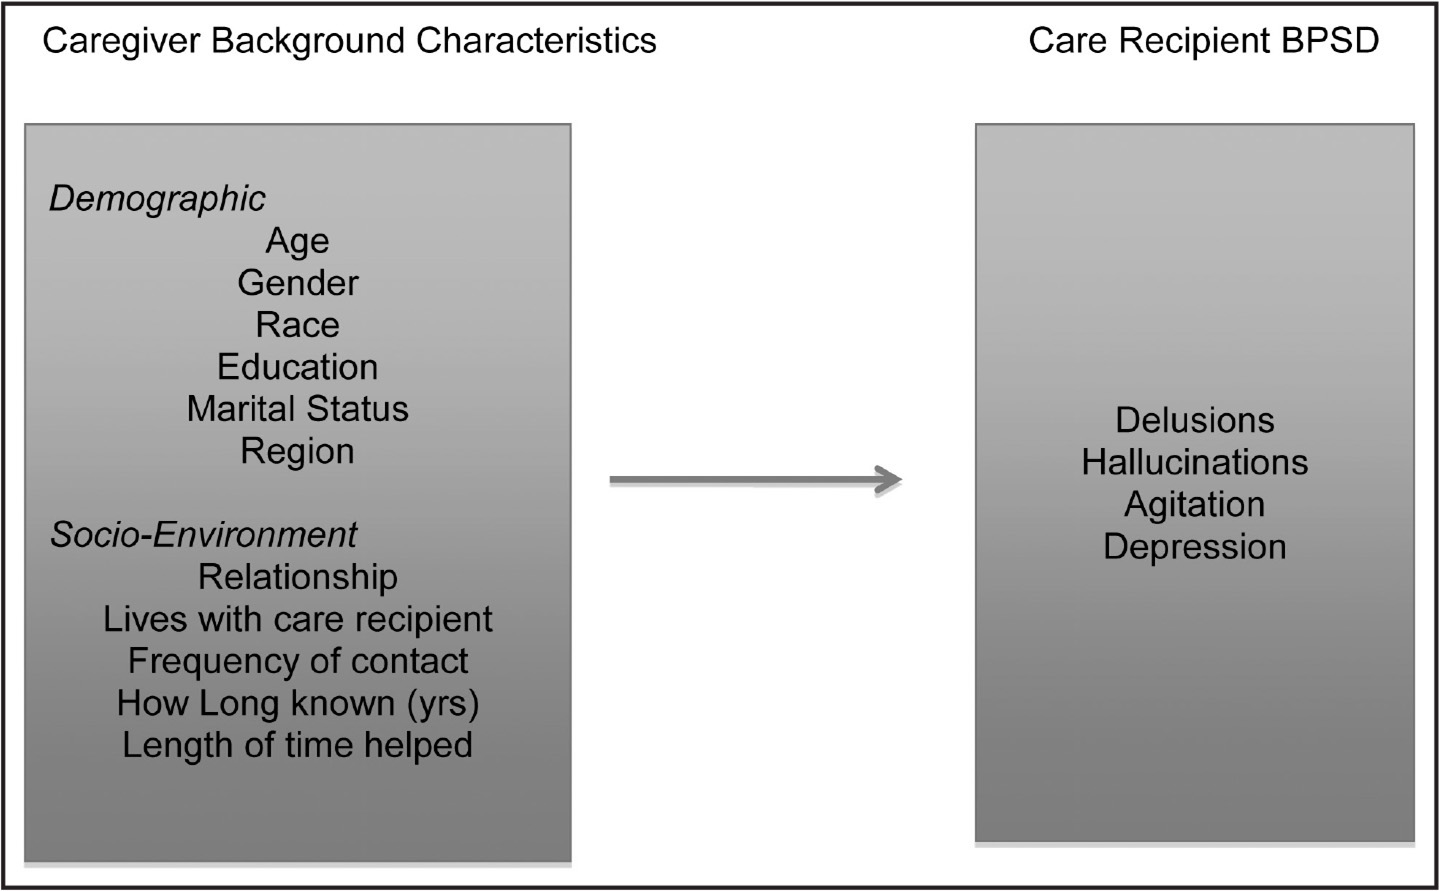 Relationship between caregiver background characteristics and care recipients' behavioral and psychological symptoms of dementia (BPSD).